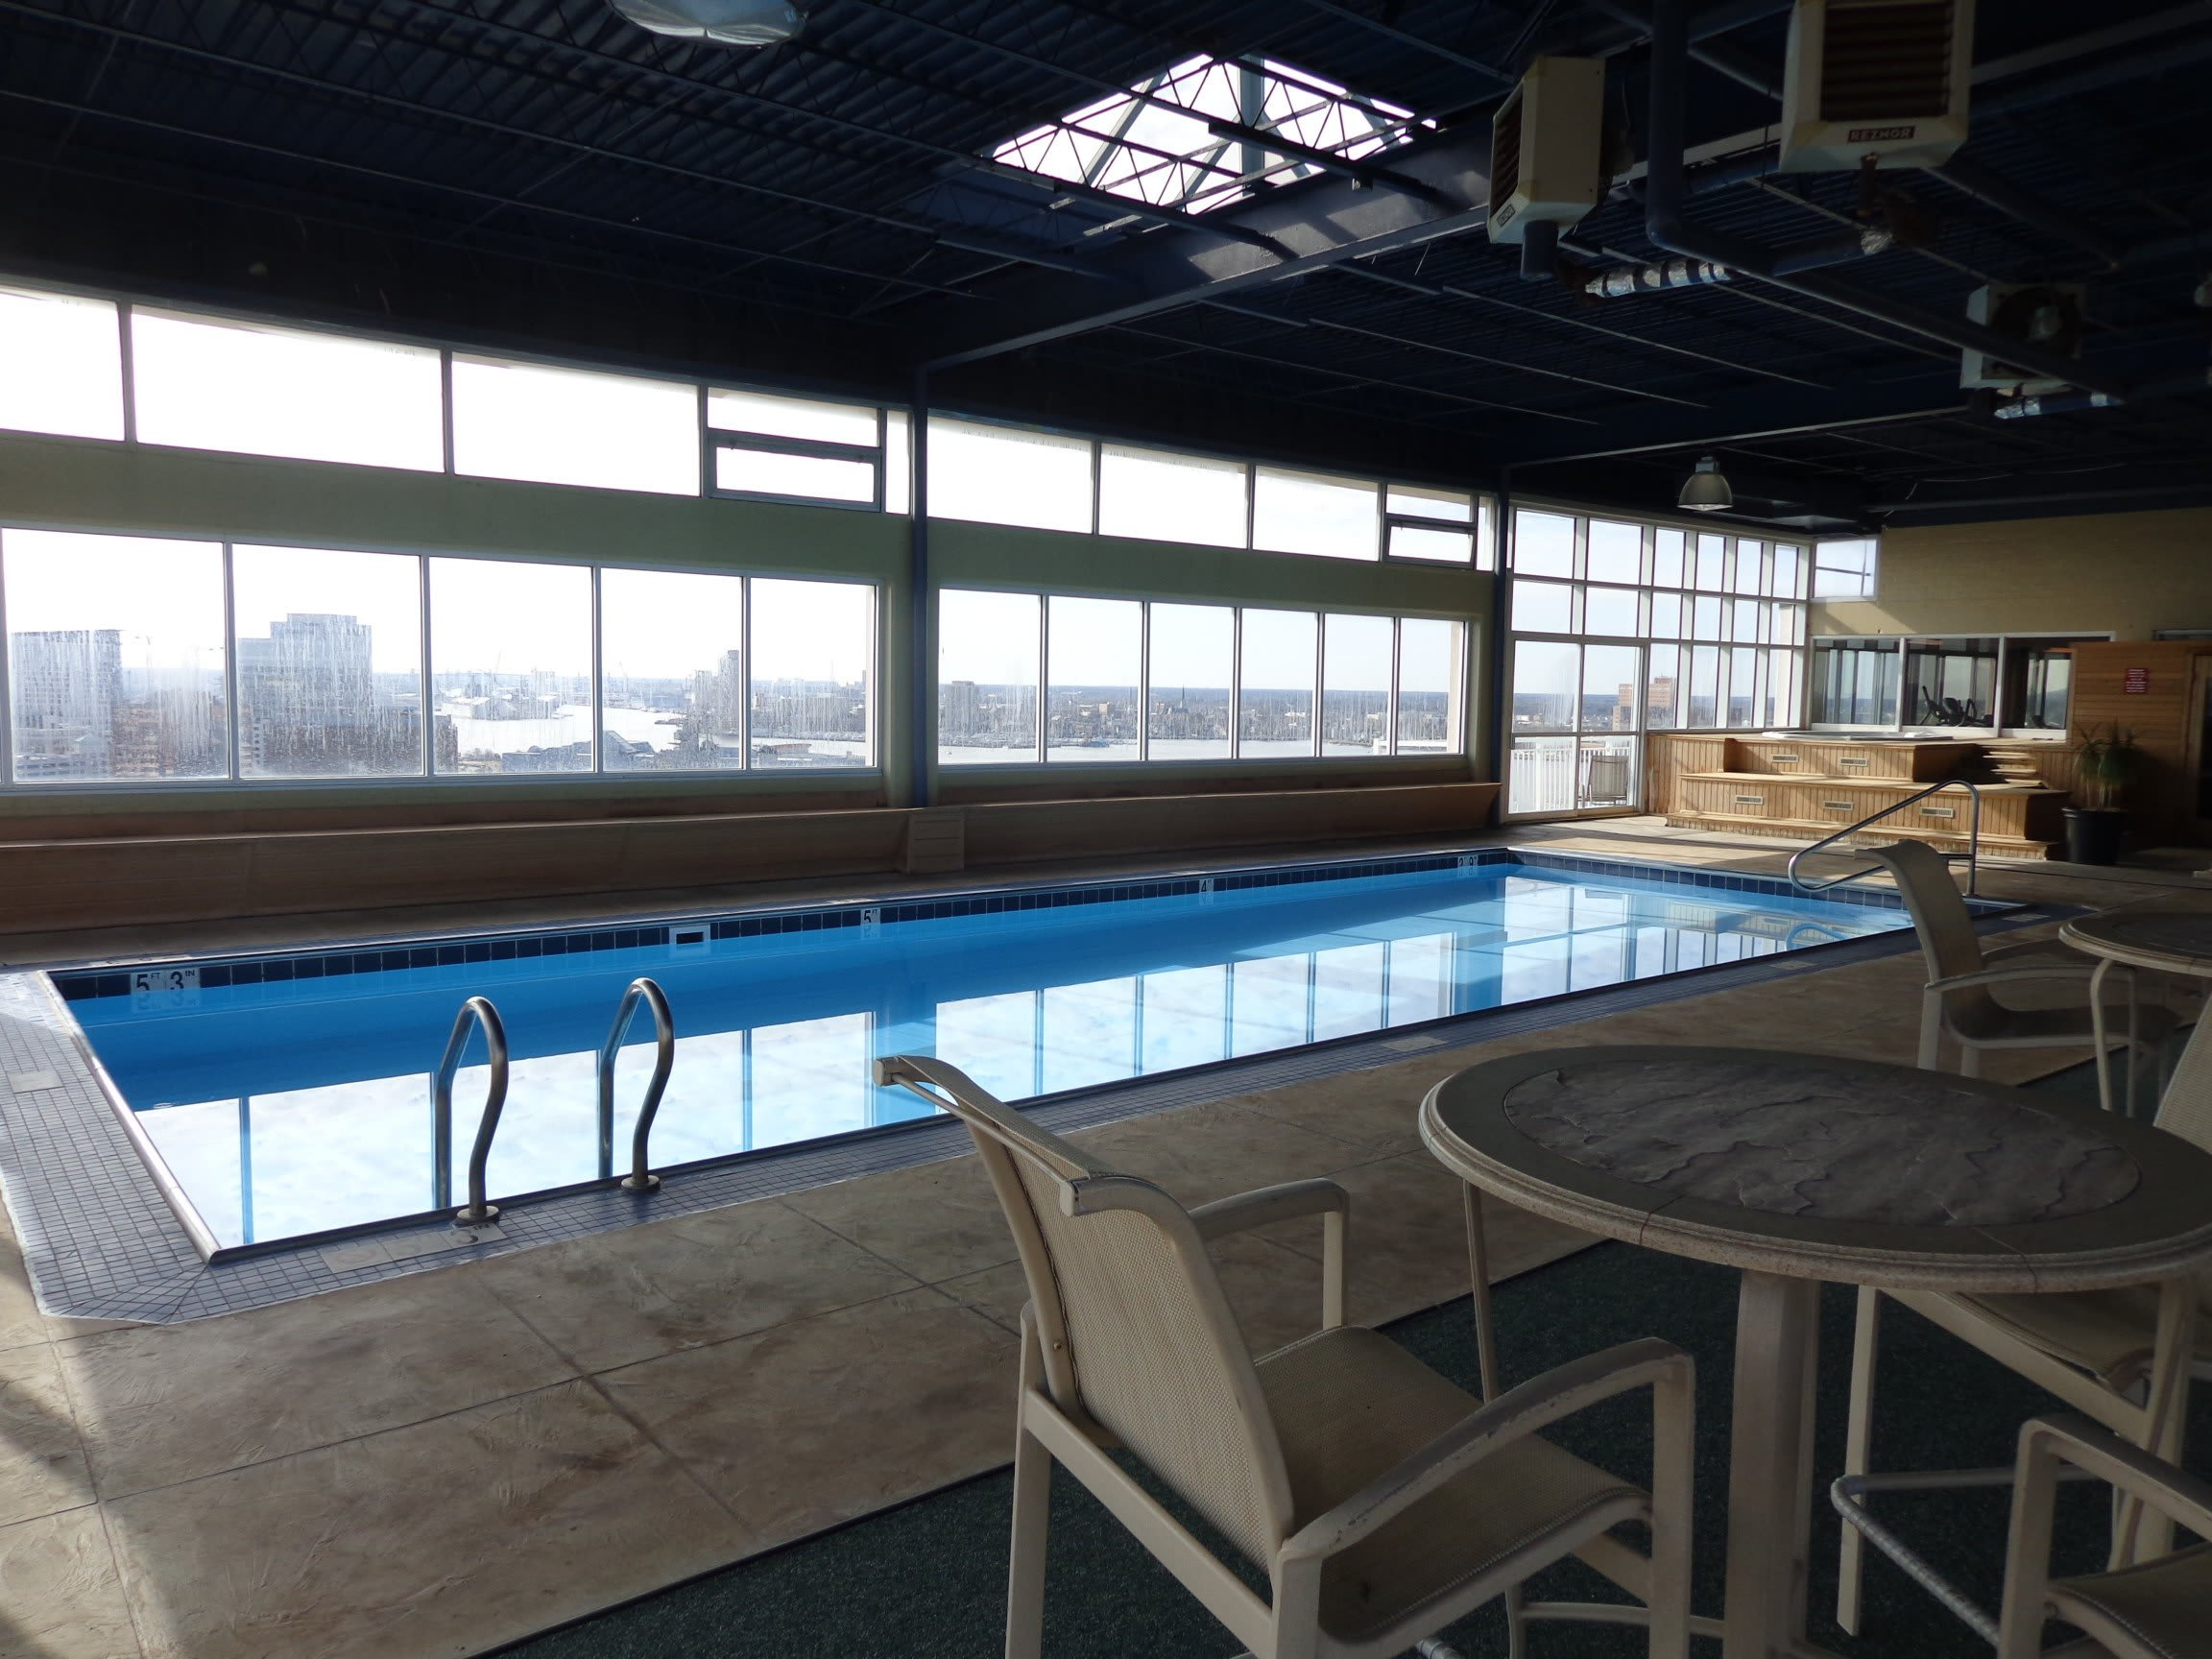 Indoor Swimming Pool with Seating at Hague Towers in Norfolk, Virginia